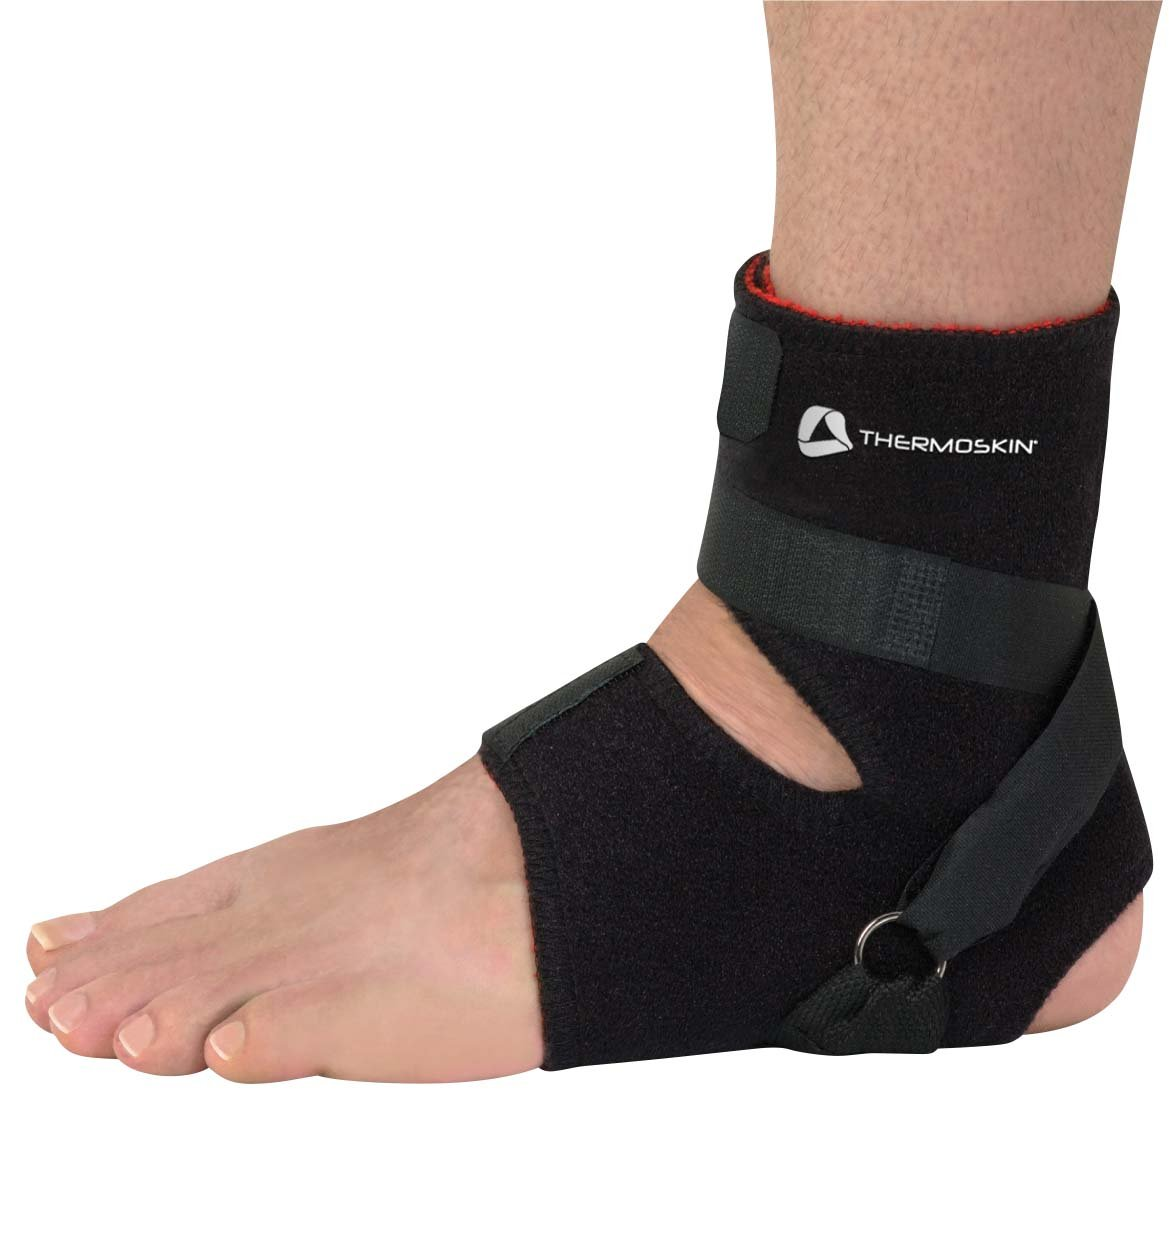 Thermoskin Heel Rite Daytime Ankle/Foot Support, Small/Medium by Thermoskin